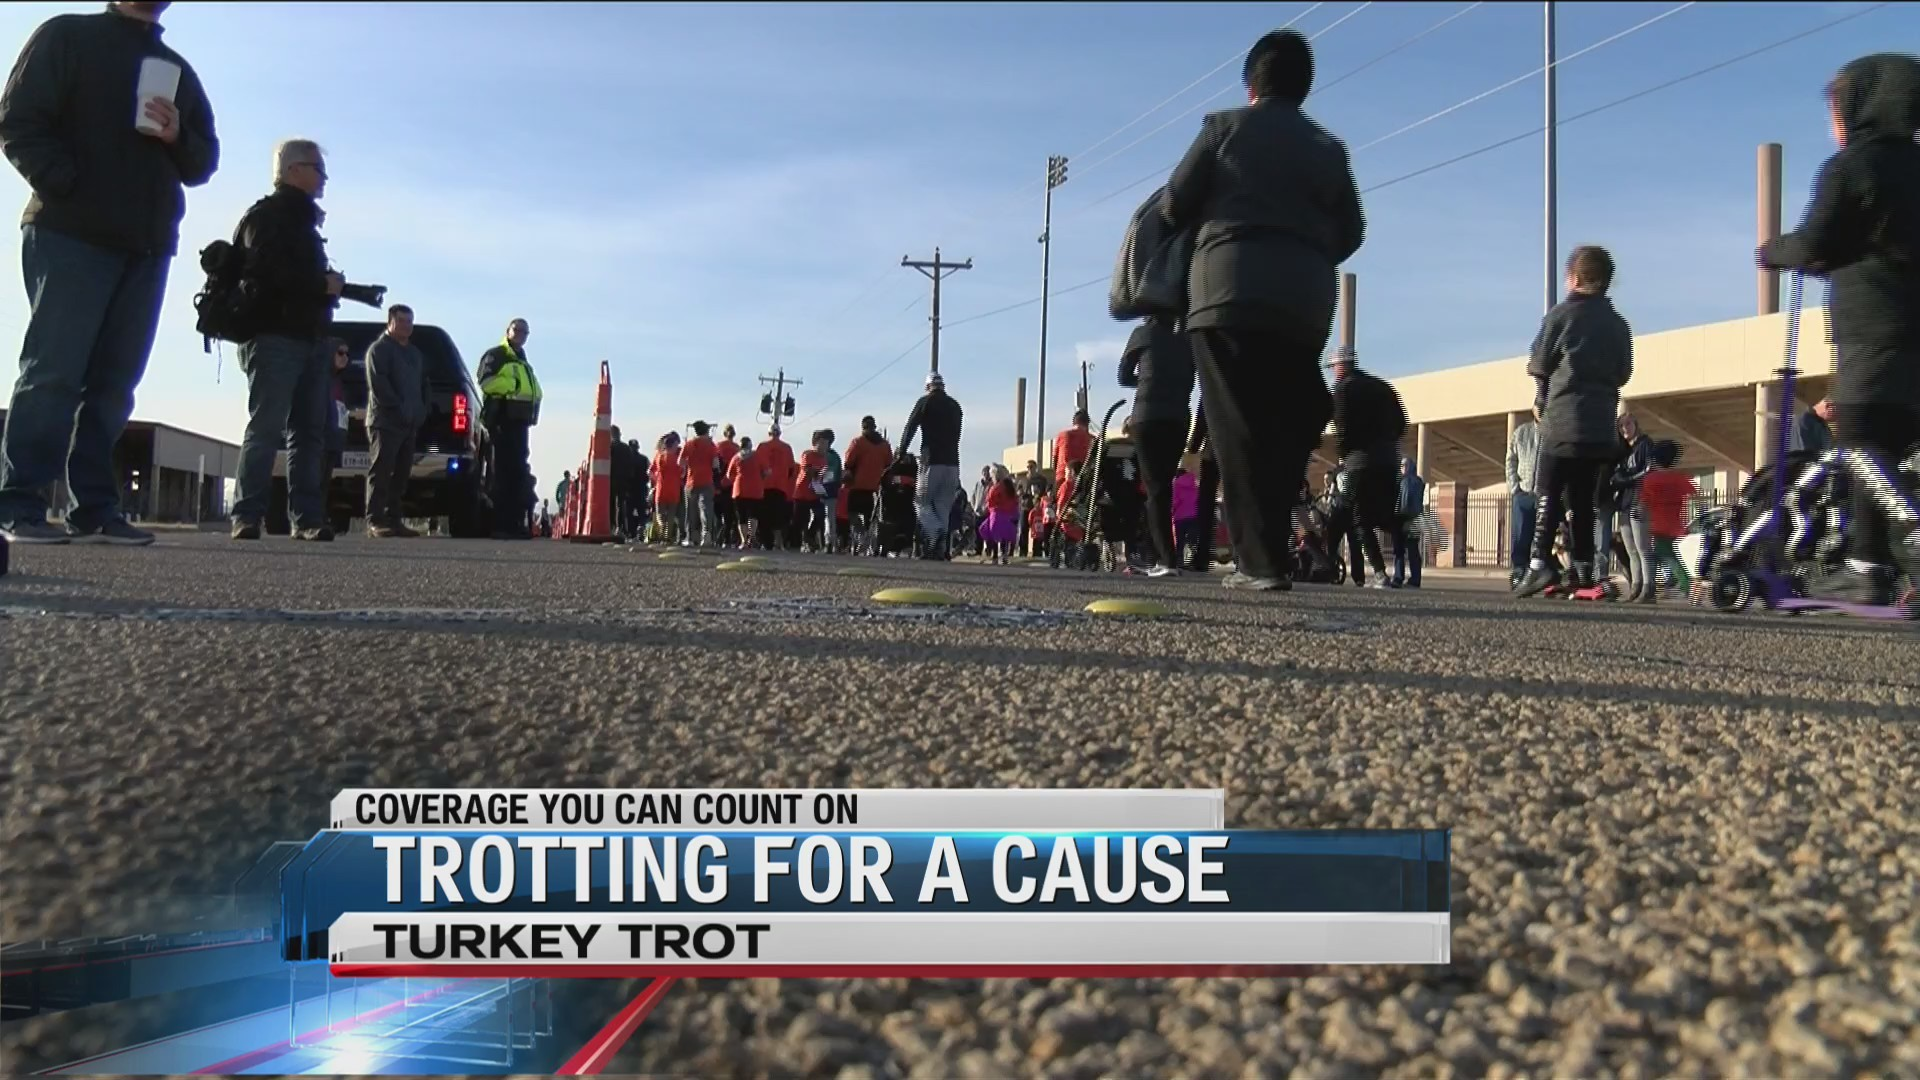 Trotting_for_a_cause_0_20181123011024